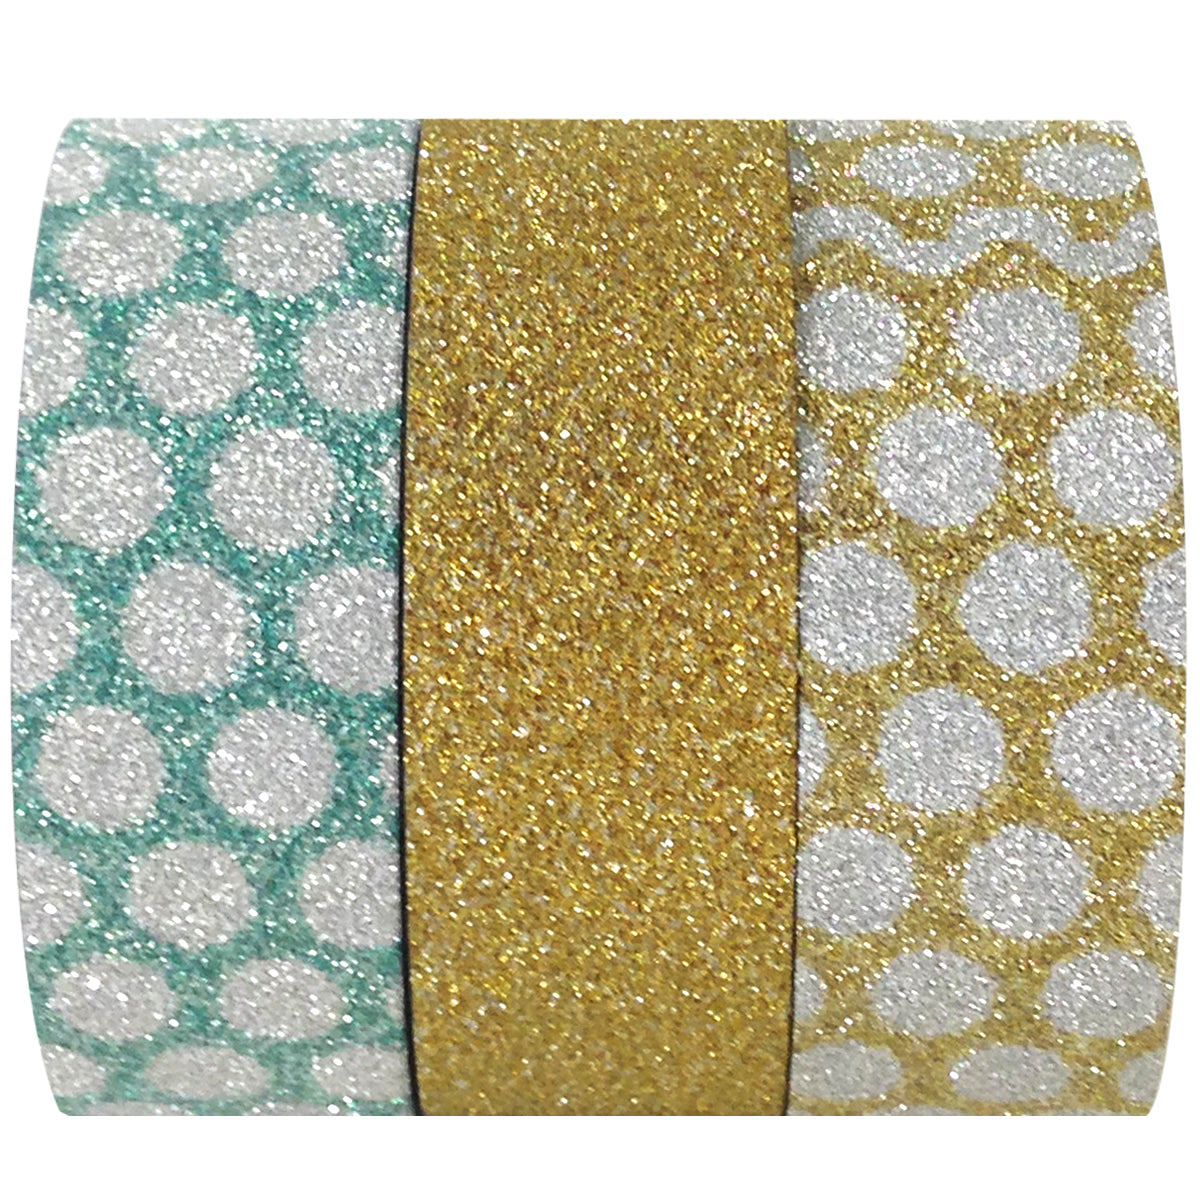 Wrapables Bright Dots Japanese Washi Masking Tape (Set of 3)